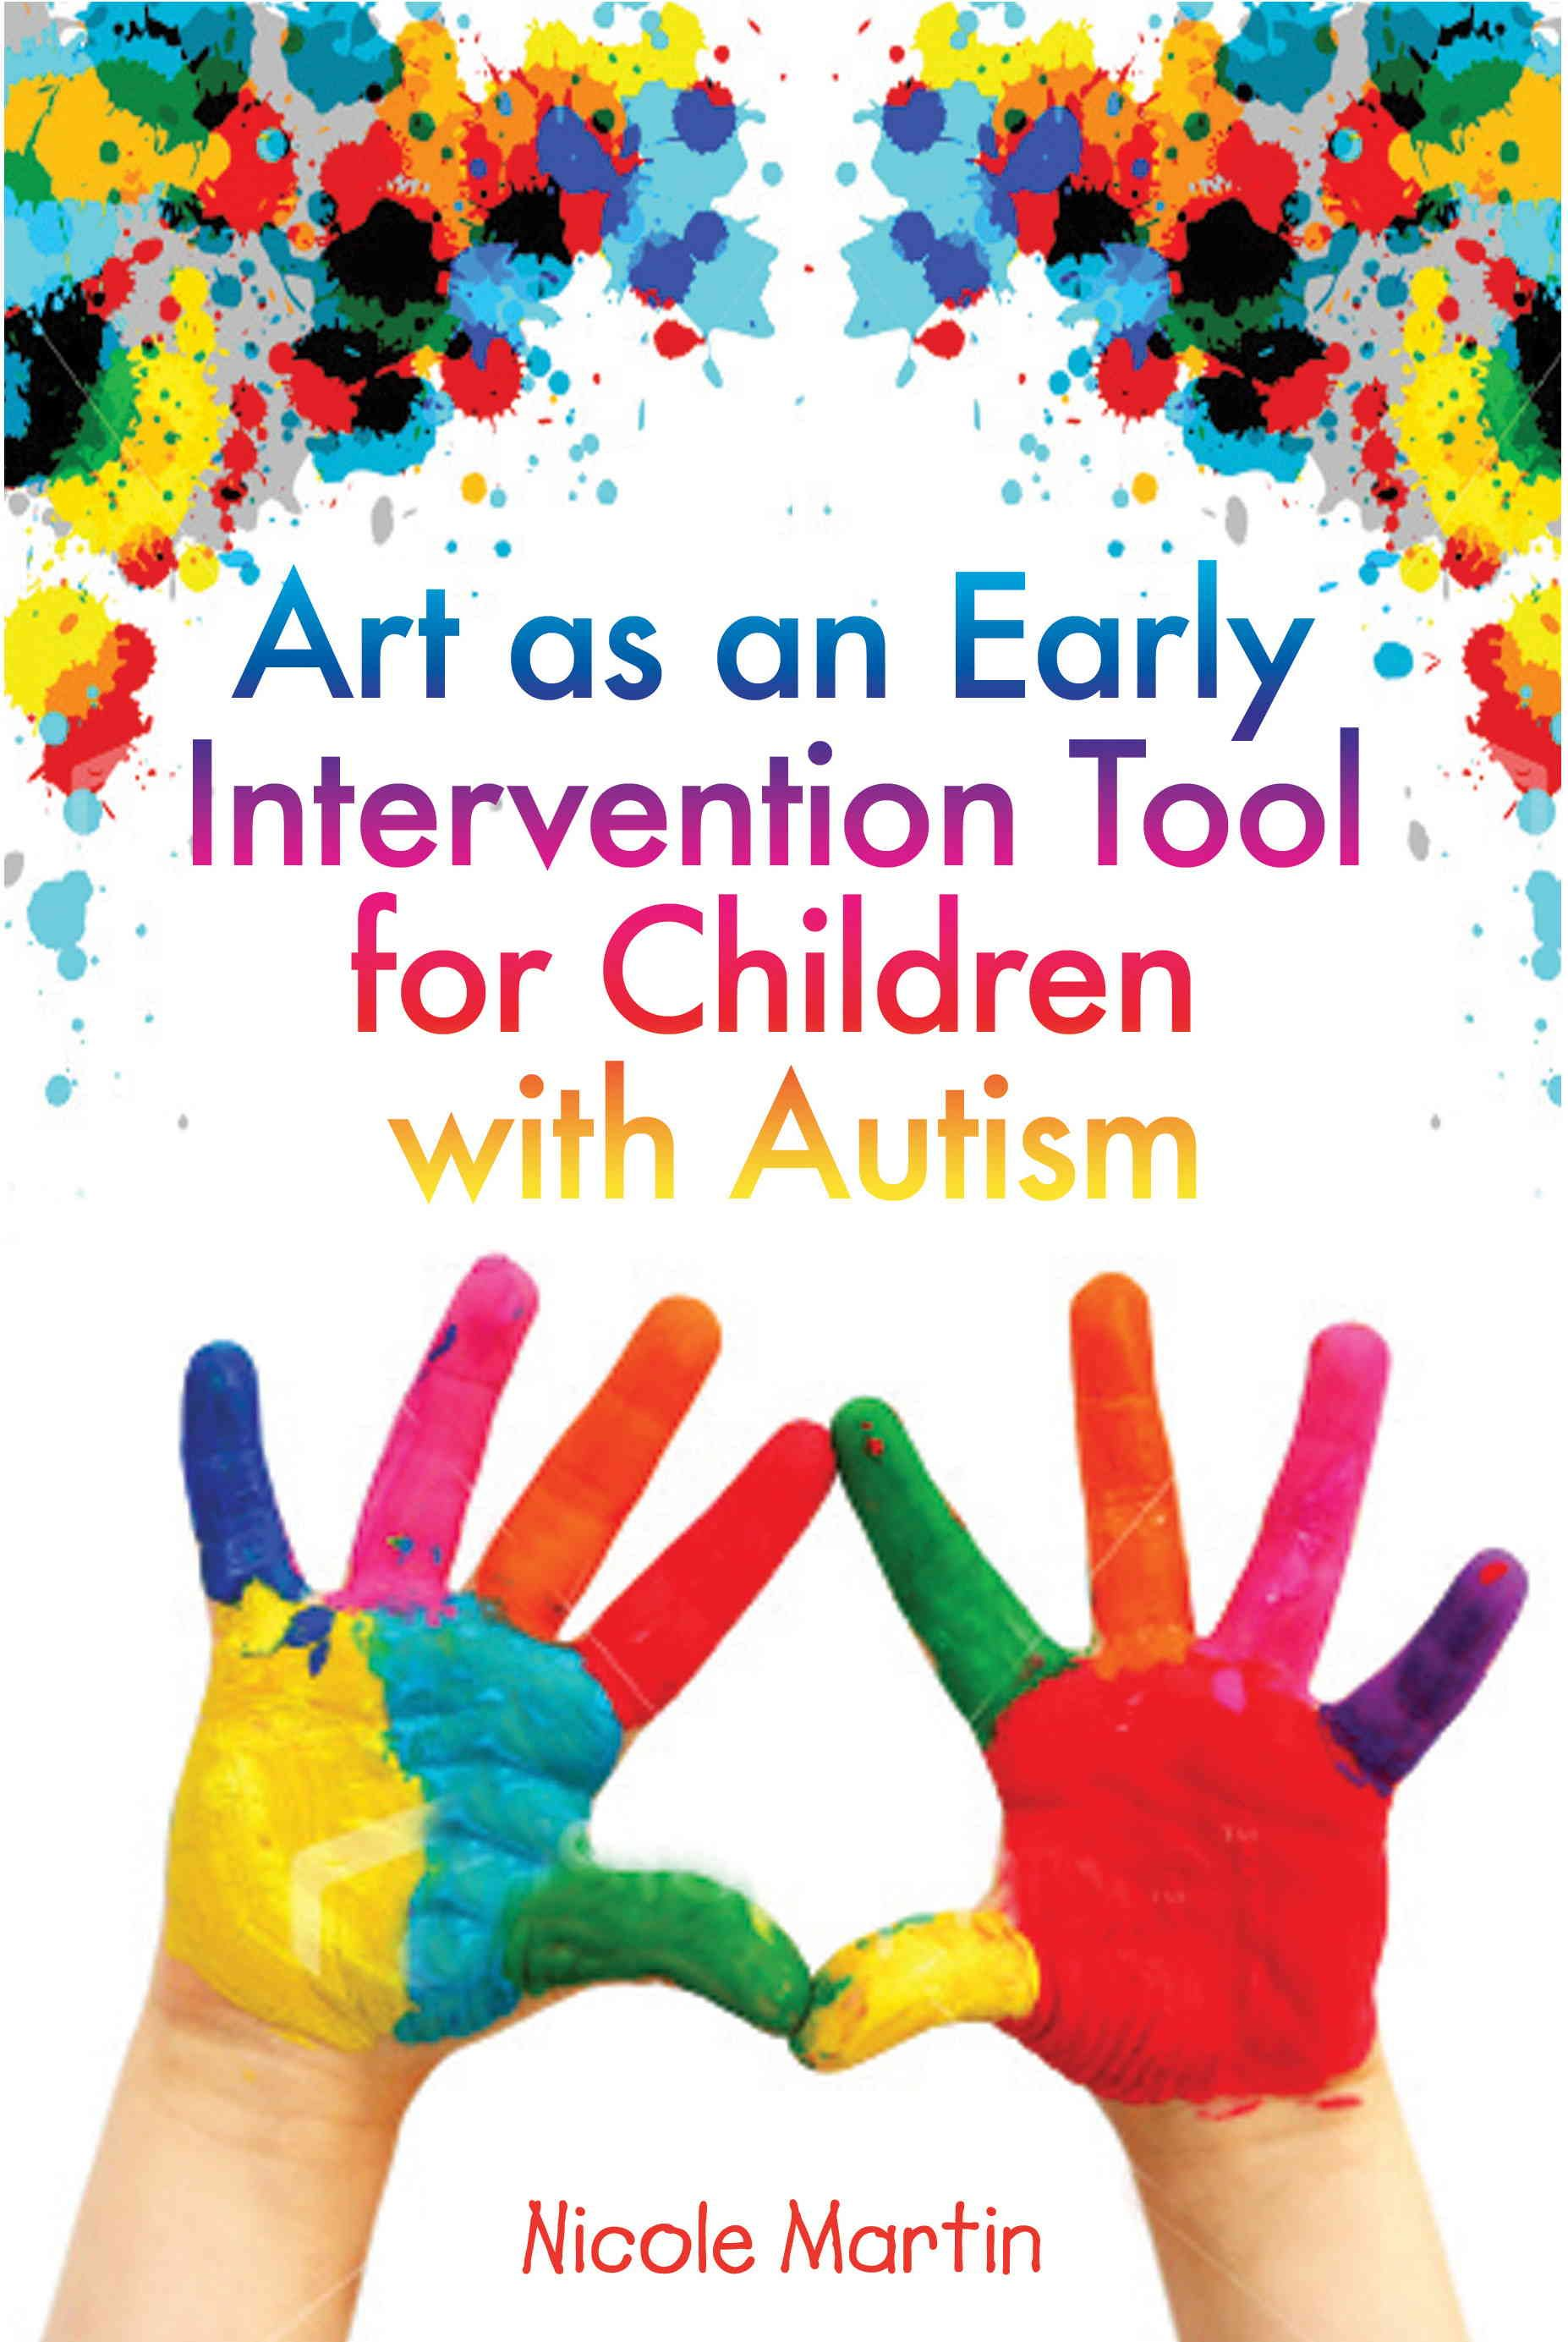 Art as an Early Intervention Tool for Children with Autism Also a